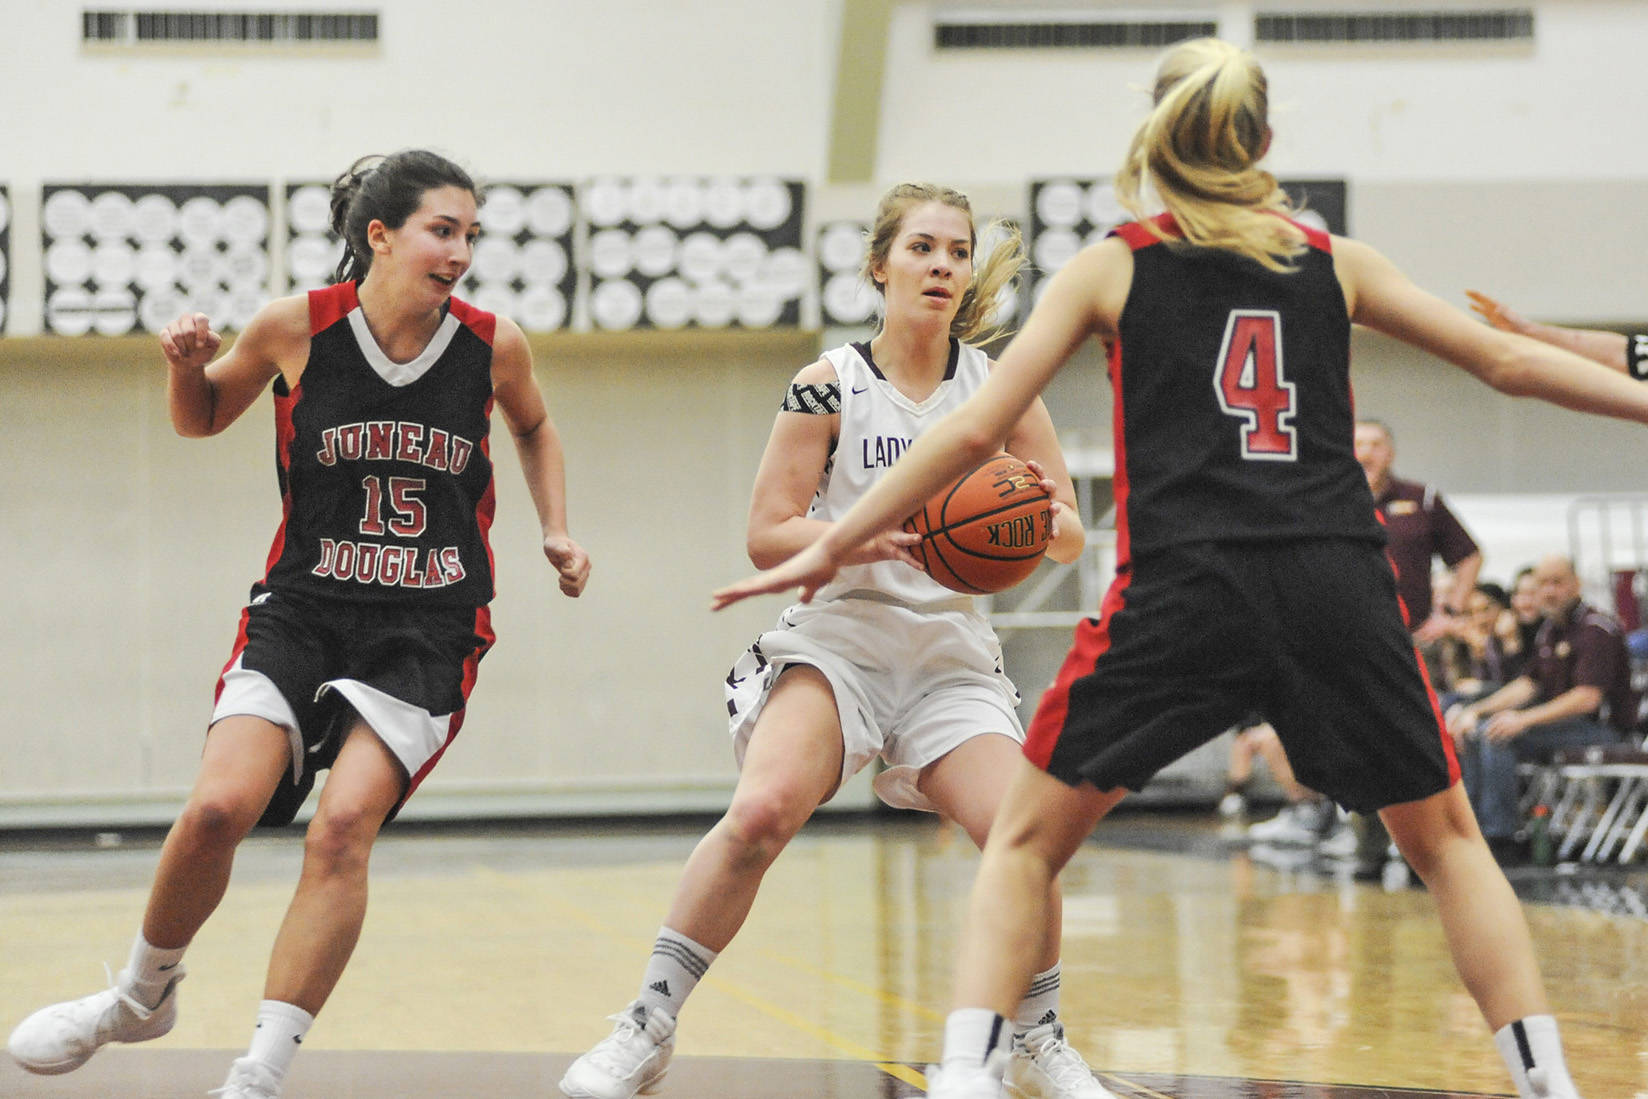 Juneau-Douglas players Jenae Pusich, left and Sadie Tuckwood, right, put the pressure on Kayhi's Ashley Huffine in the first quarter Friday night at the Clarke Cochrane Gymnasium. JDHS won 50-35 over the Lady Kings. (Hall Anderson | Ketchikan Daily News)